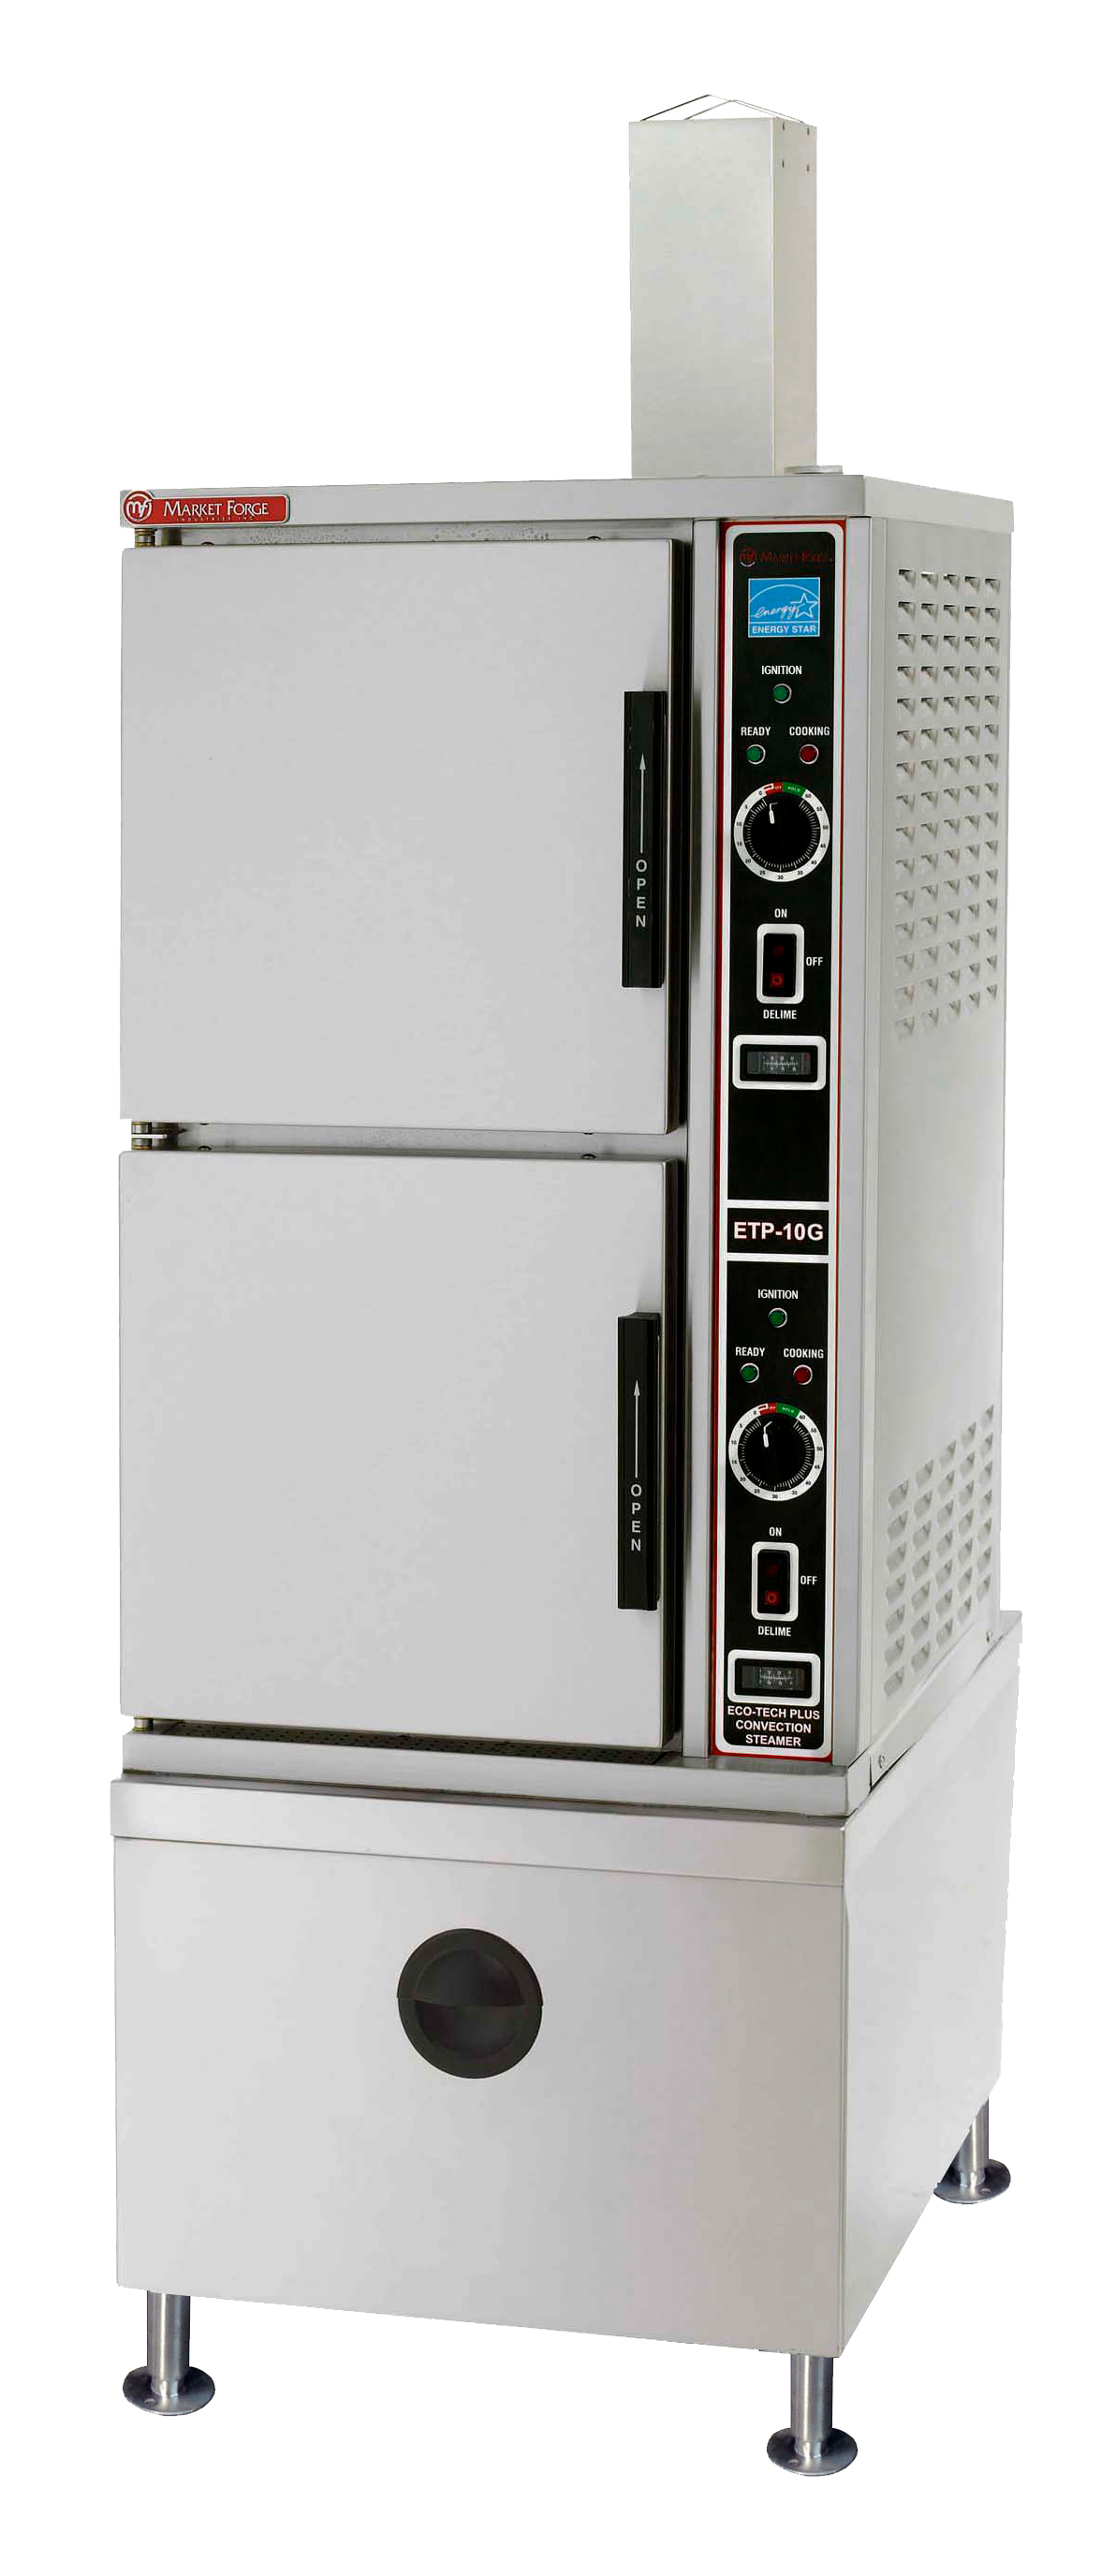 Market Forge ETP-10G steamer, convection, gas, floor model